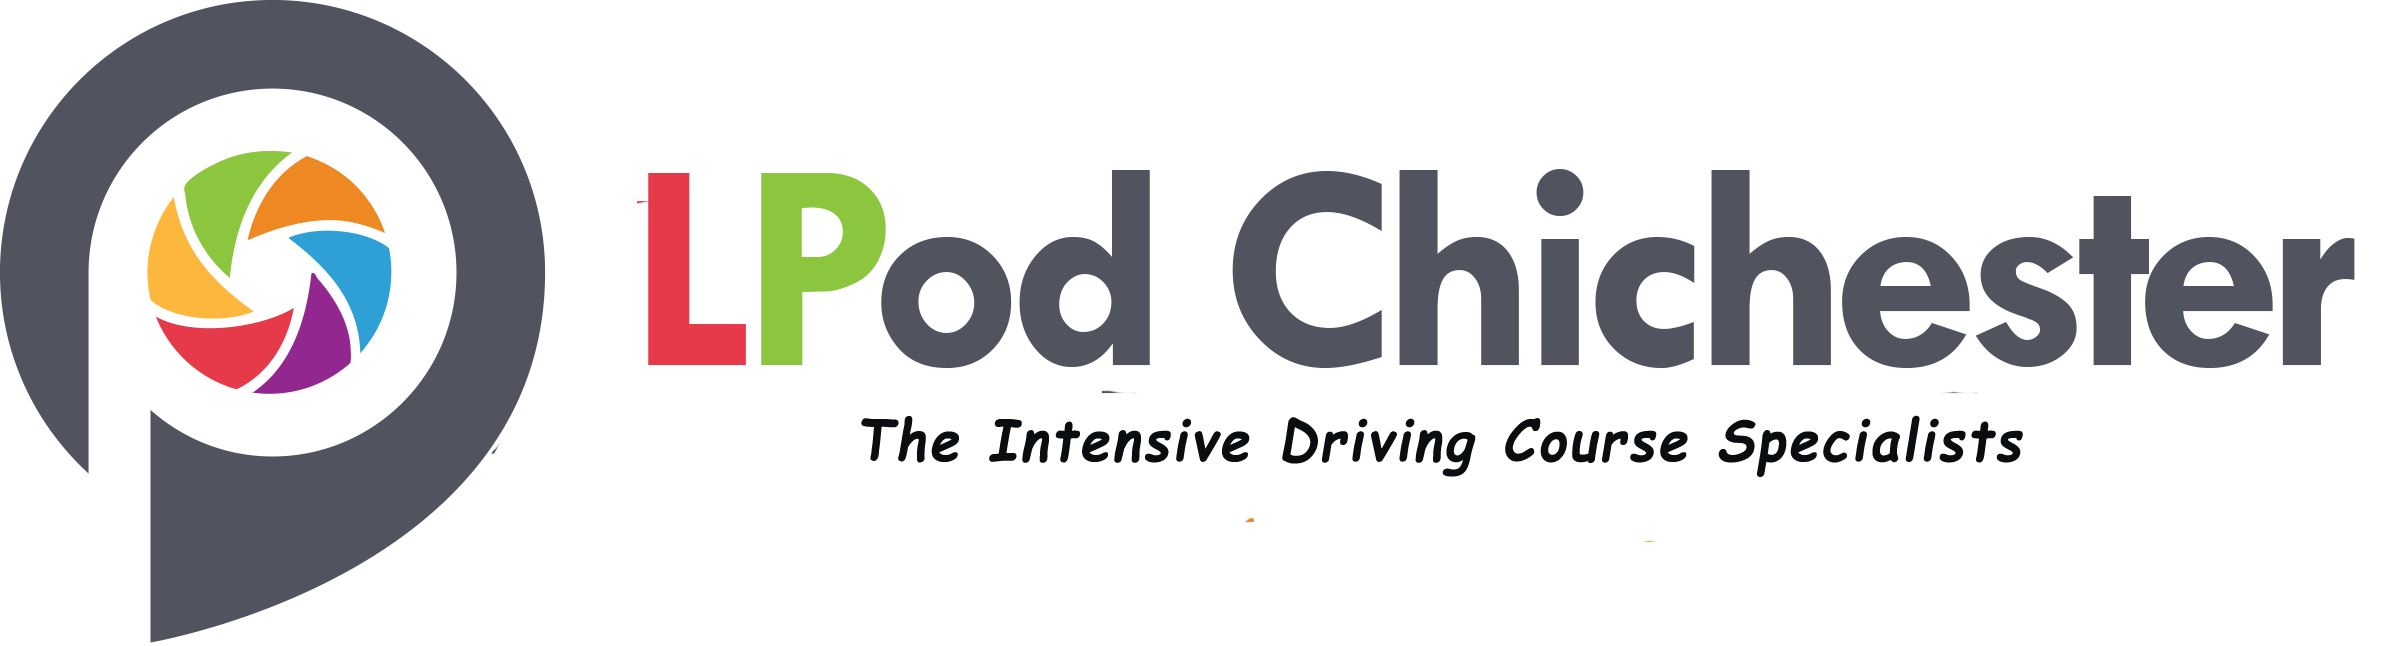 intensive driving courses chichester